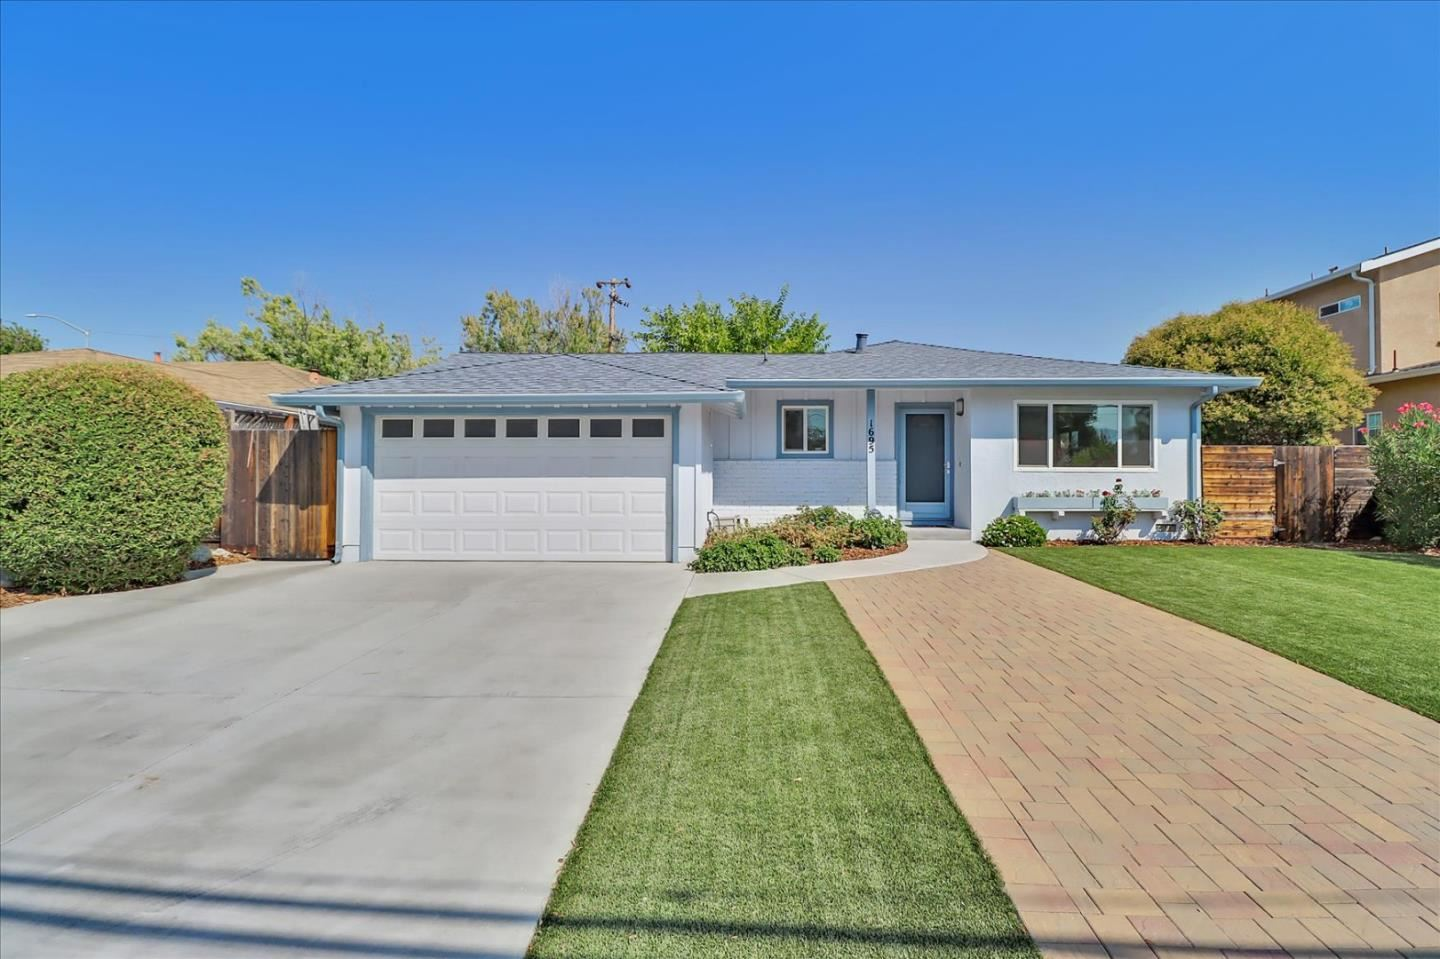 Photo for 1695 Westmont Avenue, CAMPBELL, CA 95008 (MLS # ML81862422)